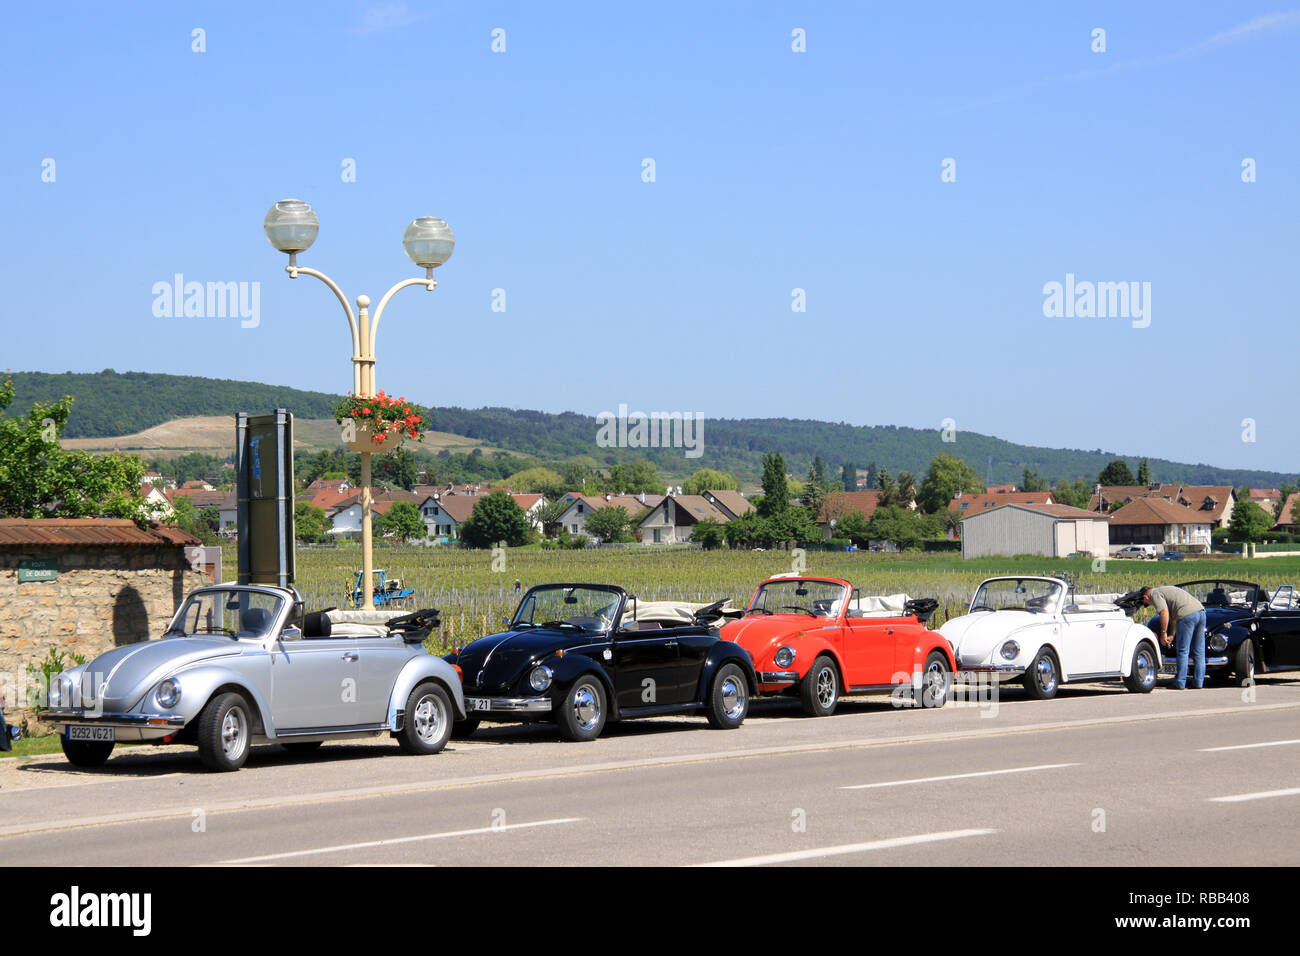 Volkswagen beetle cabriolet convertible in the Burgundy town of Gevrey- Chambertin France on an owners club rally drive outing in French countryside - Stock Image